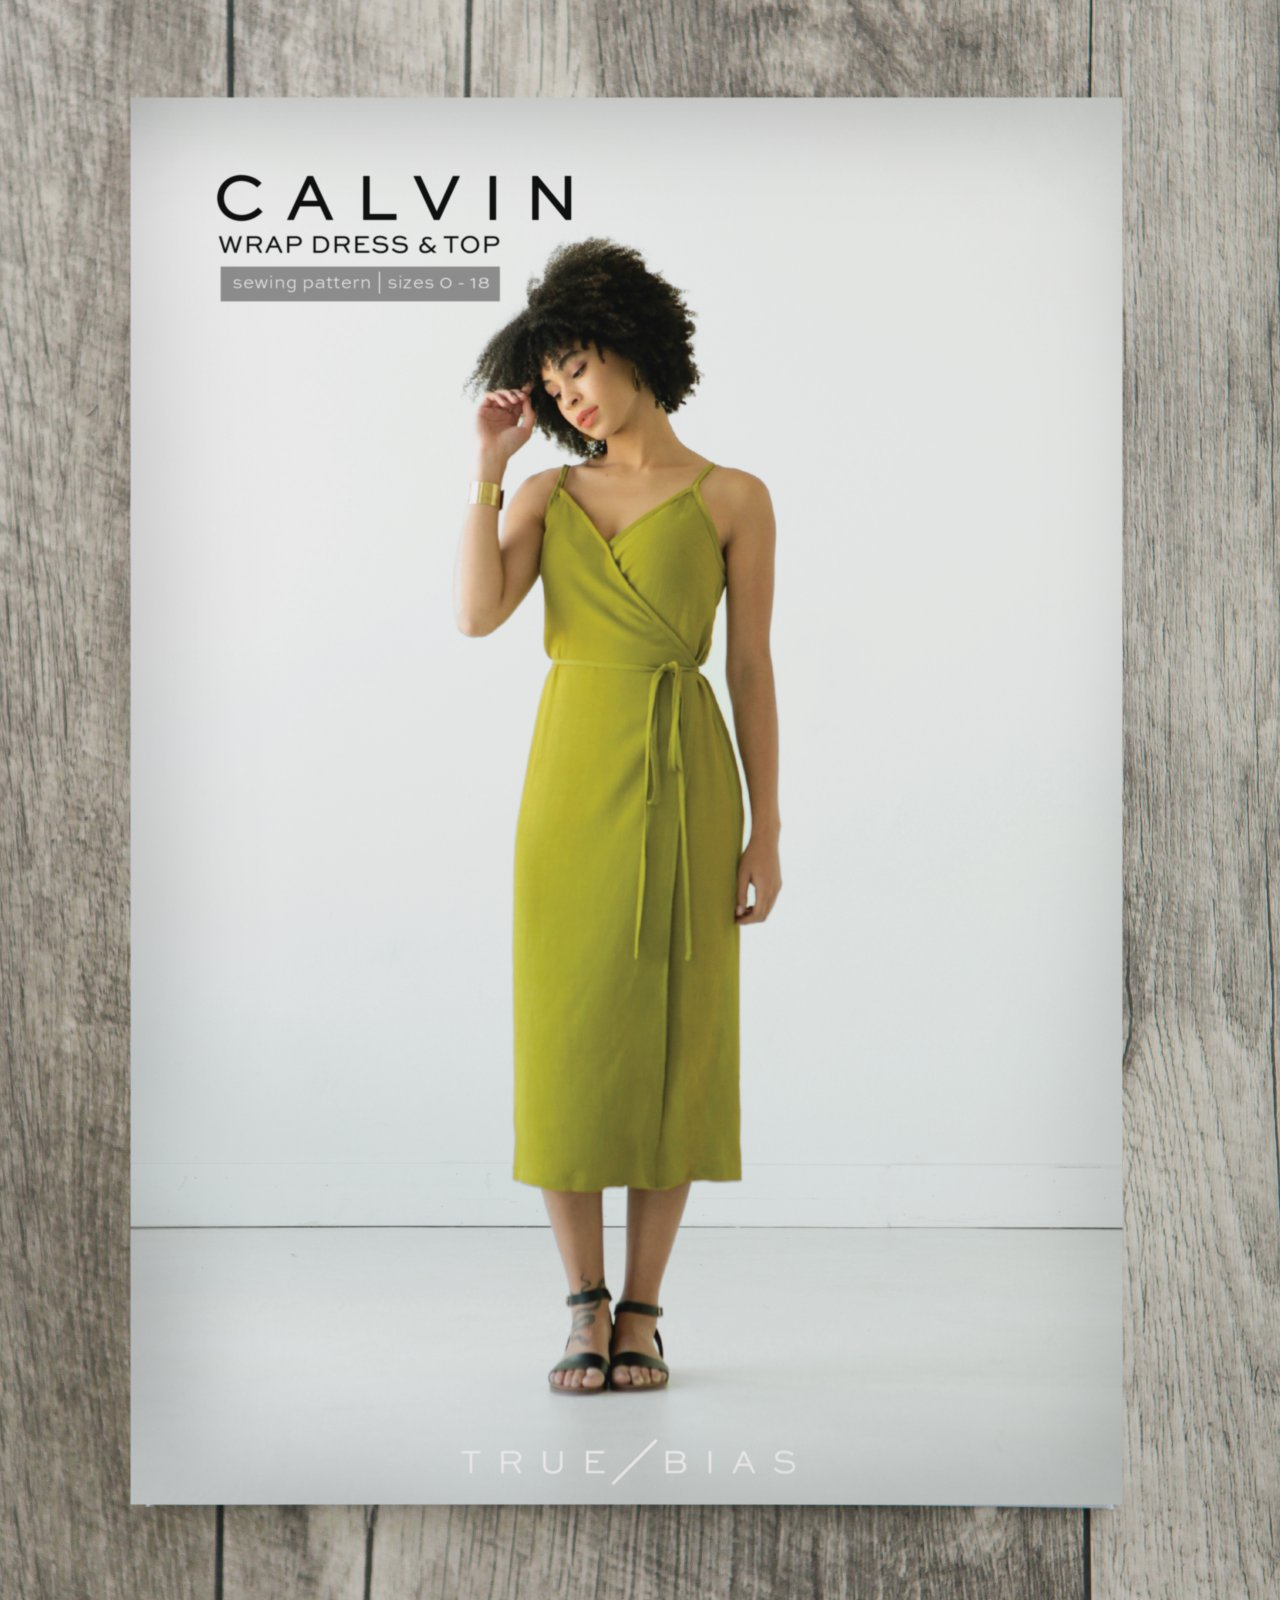 True Bias - Calvin Top/Dress Paper Pattern